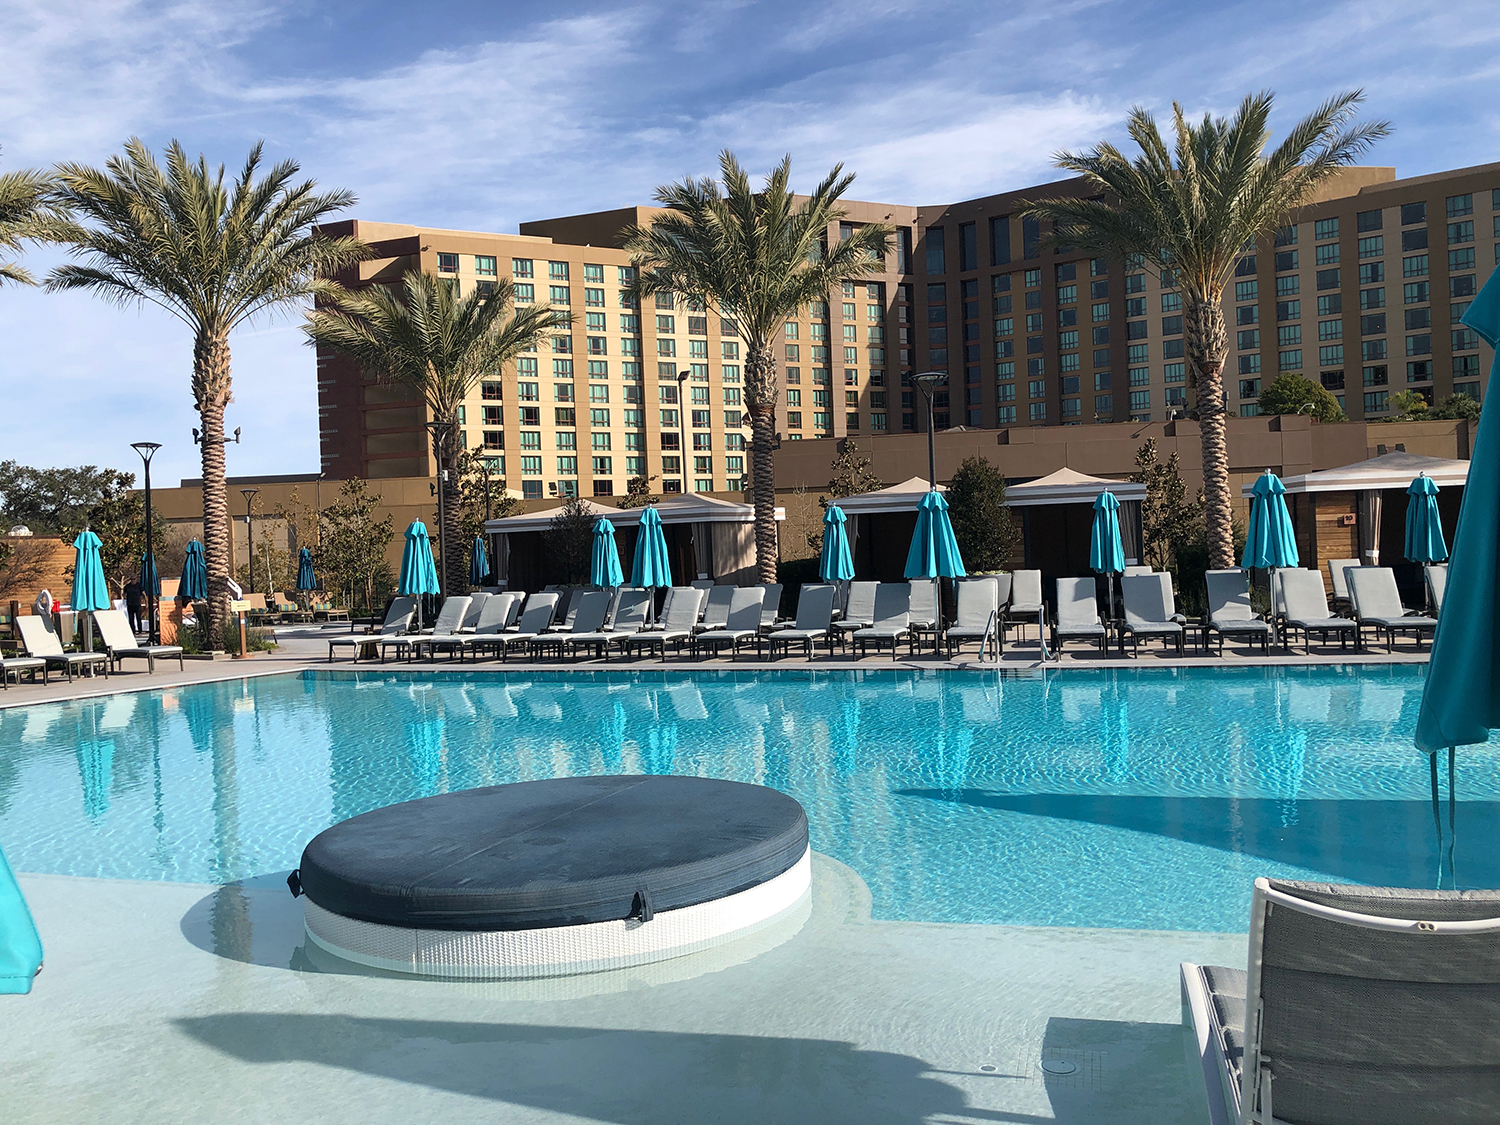 The zero-edge Main Pool with a swim-up bar at The Cove.